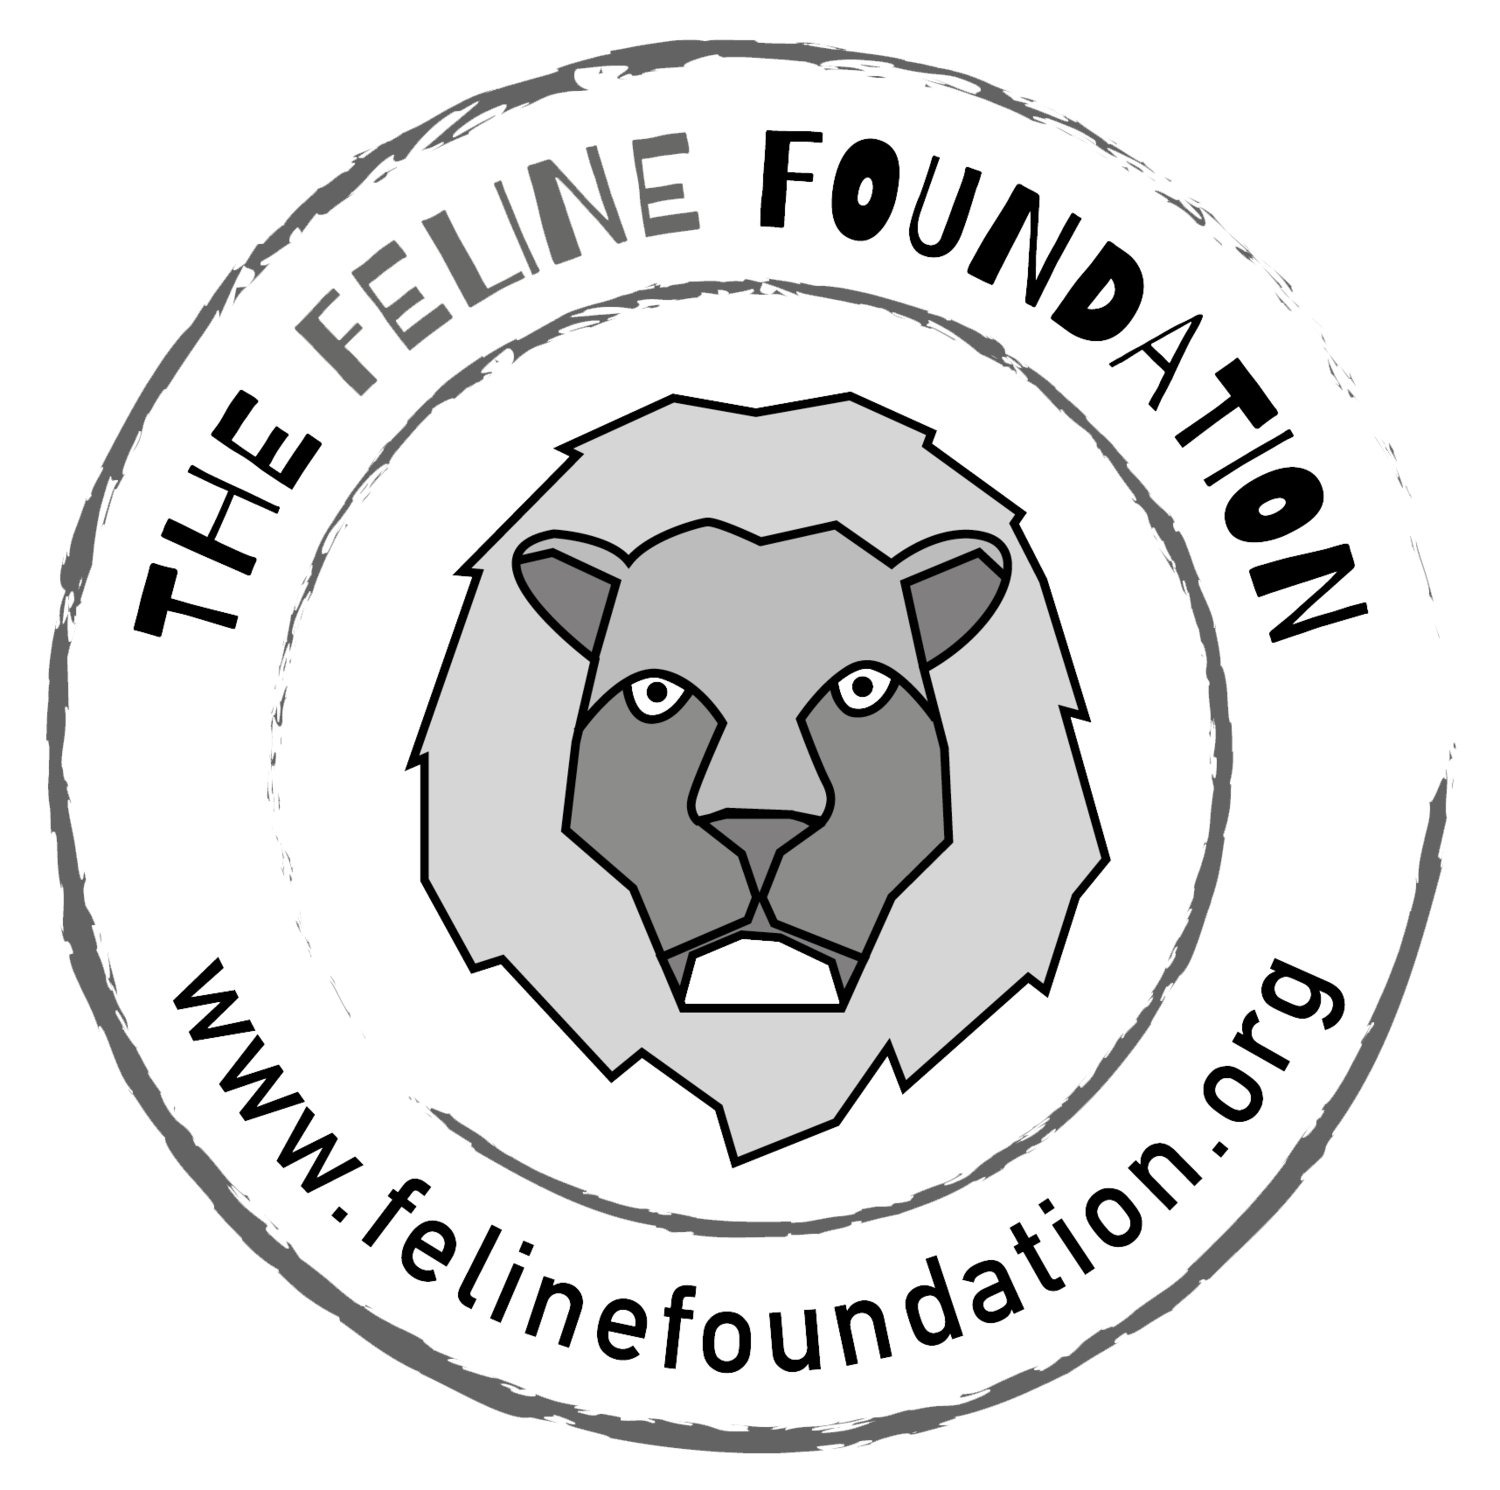 The Feline Foundation